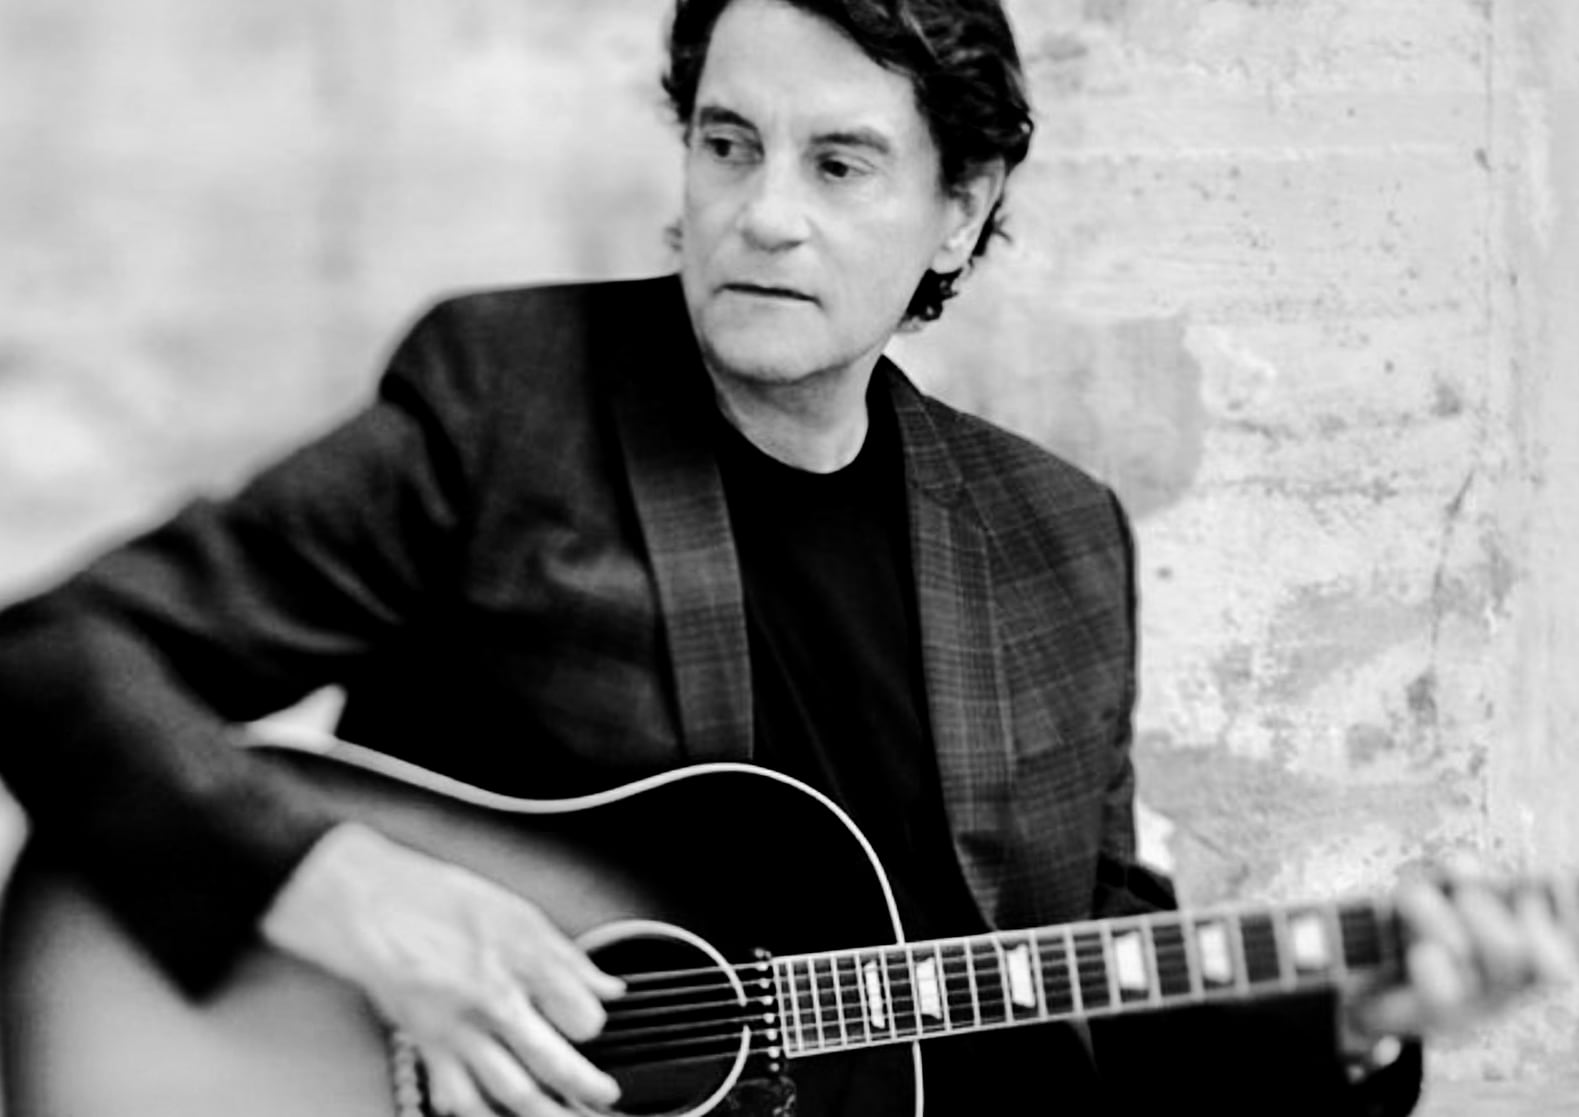 Francis Cabrel - An enduring favourite amongst French musicians, Francis Cabrel plays mainly folk music, with occasional forays into blues and country. He has sold more than 21 million albums worldwide.